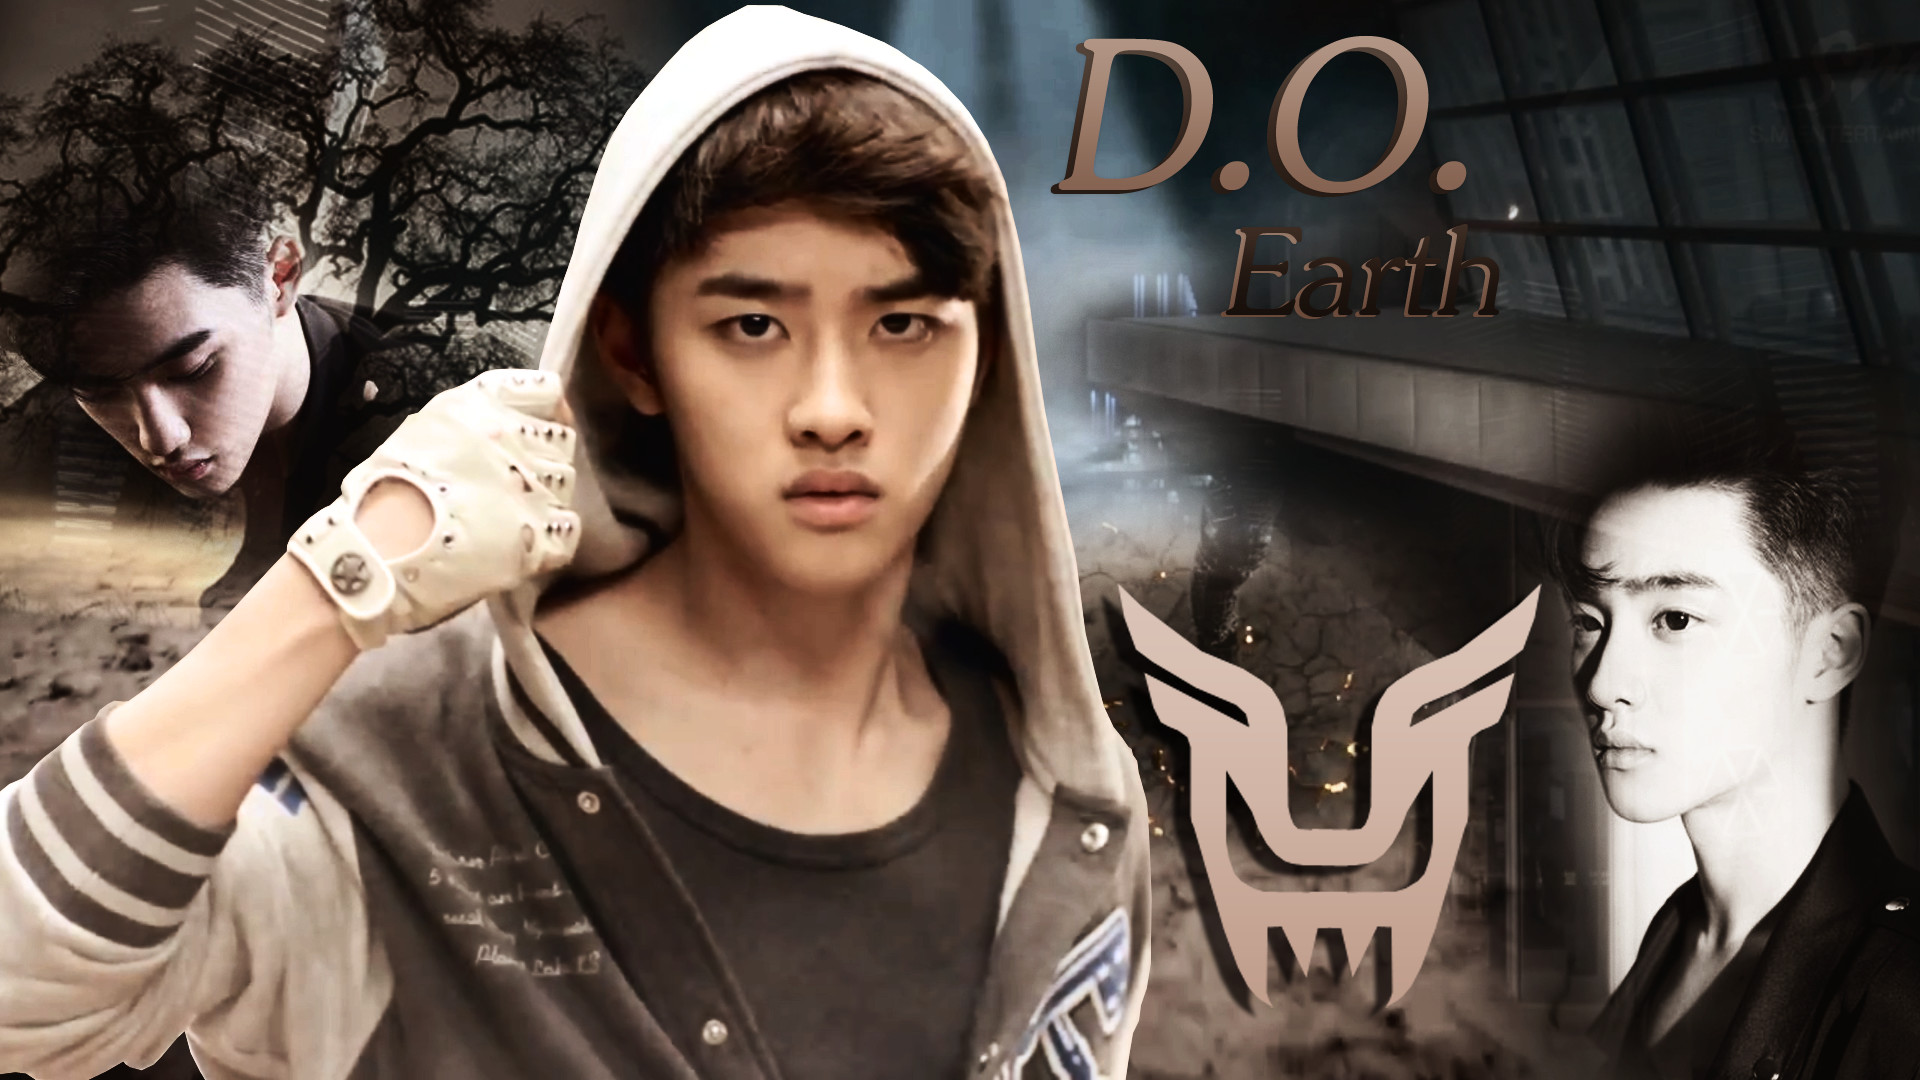 EXO D.O. Wallpaper 1 by SHINeeSJGirlz139 EXO D.O. Wallpaper 1 by  SHINeeSJGirlz139